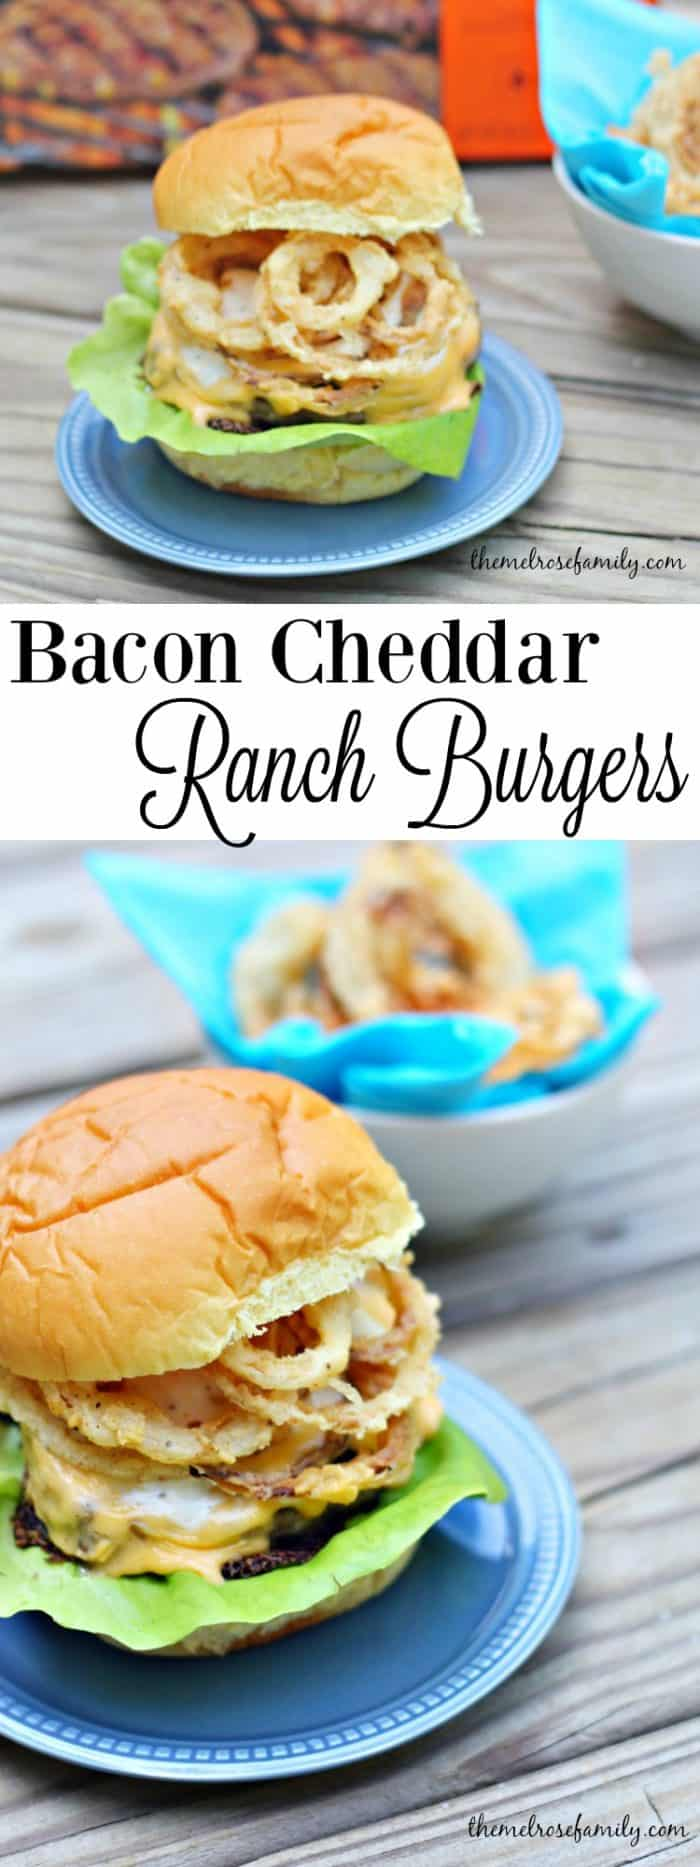 Need the perfect burger for your next barbecue These Bacon Cheddar Ranch Burgers with Onion Strings are just what a crowd ordered.